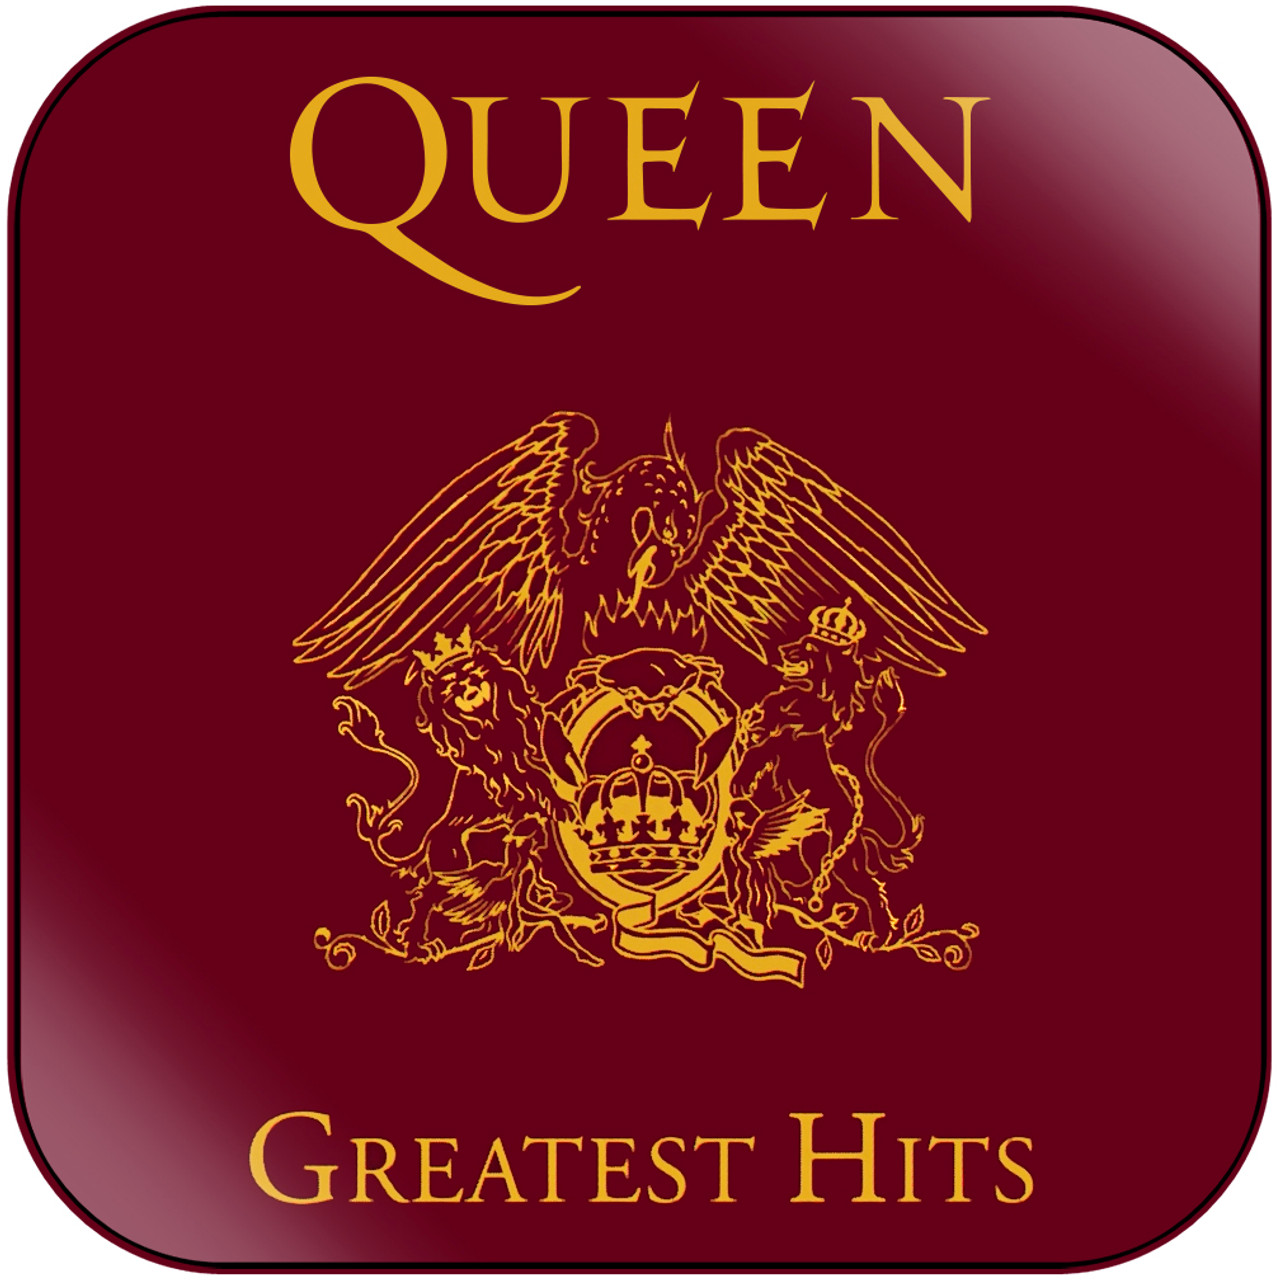 Queen - Greatest Hits 1 Album Cover Sticker Album Cover Sticker